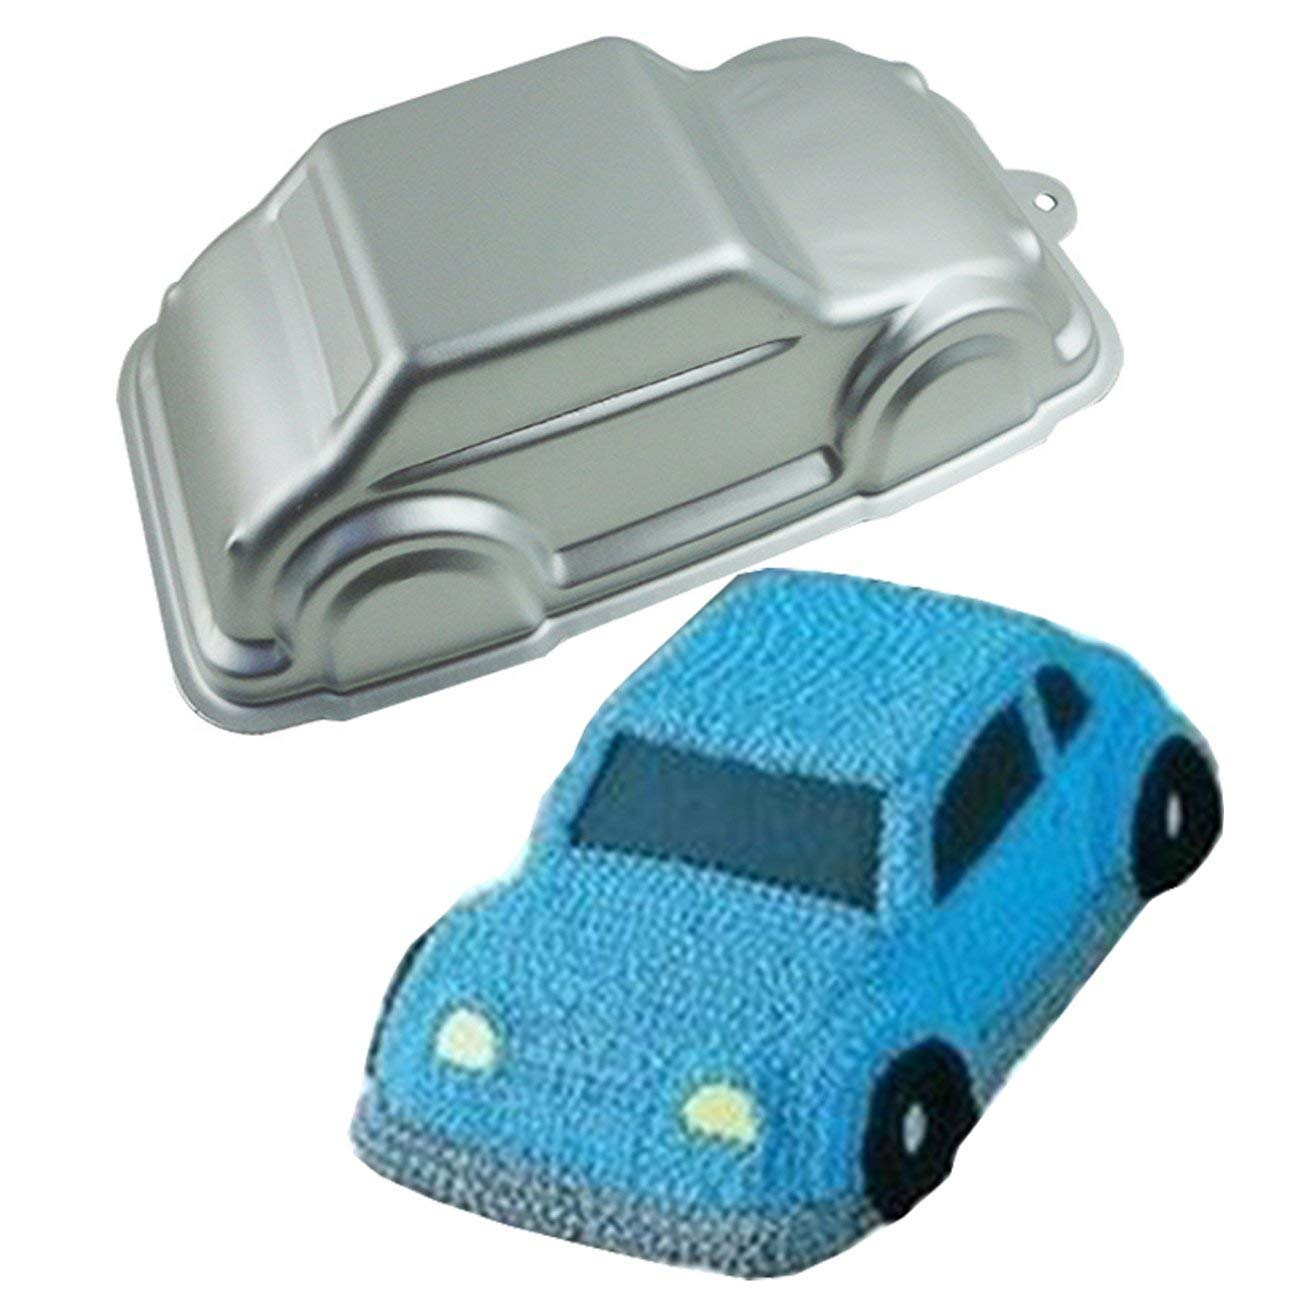 Aluminium 3D Car Cake Tin Pan Mould by Silicone Bakeware